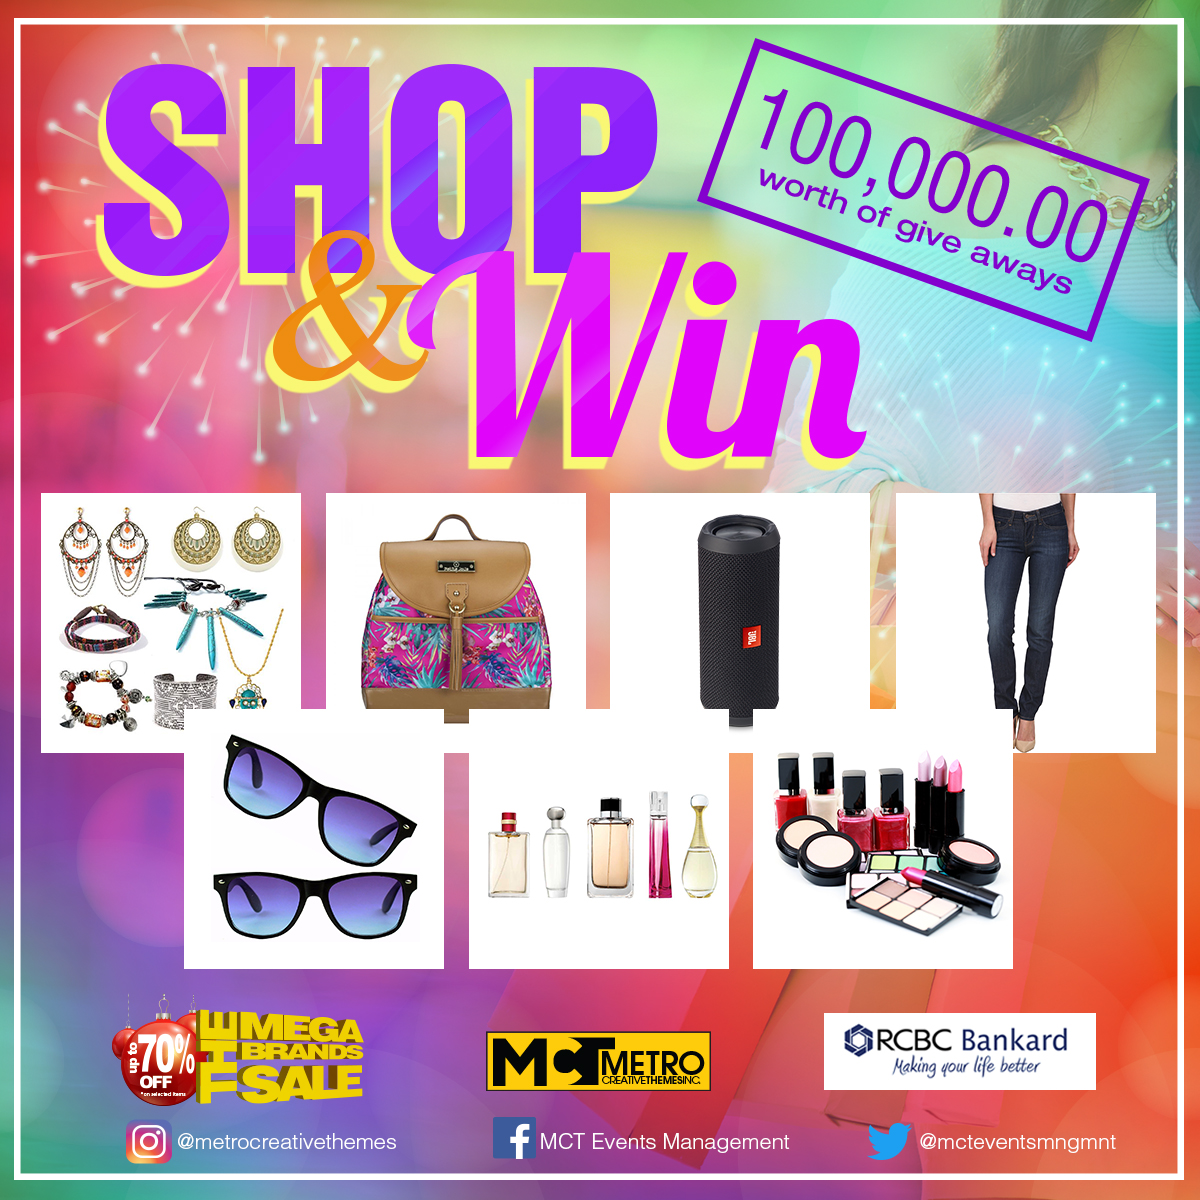 17th-mbs-shop-win-promo